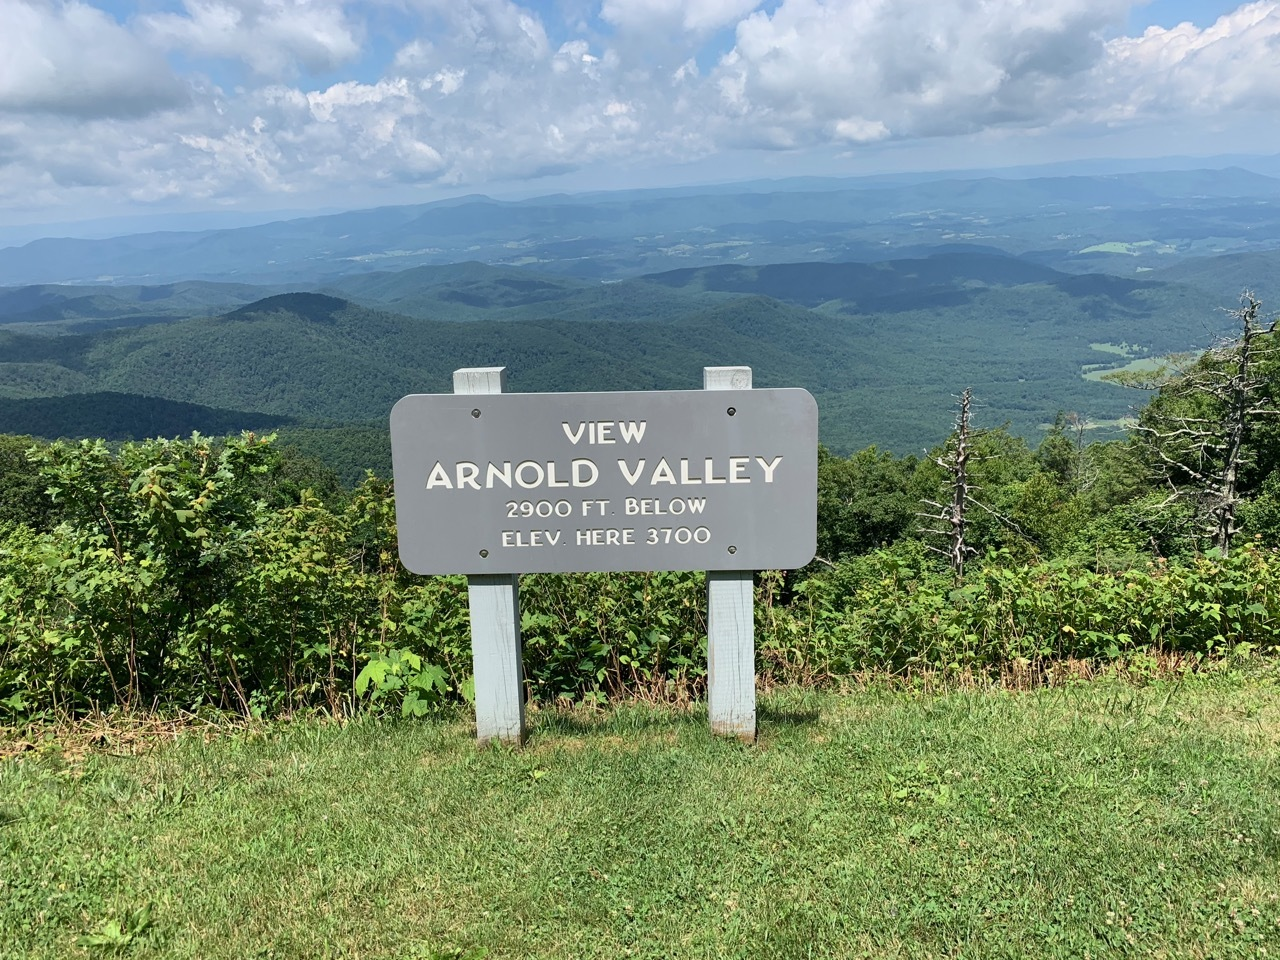 Blue Ridge Parkway - Arnold Valley